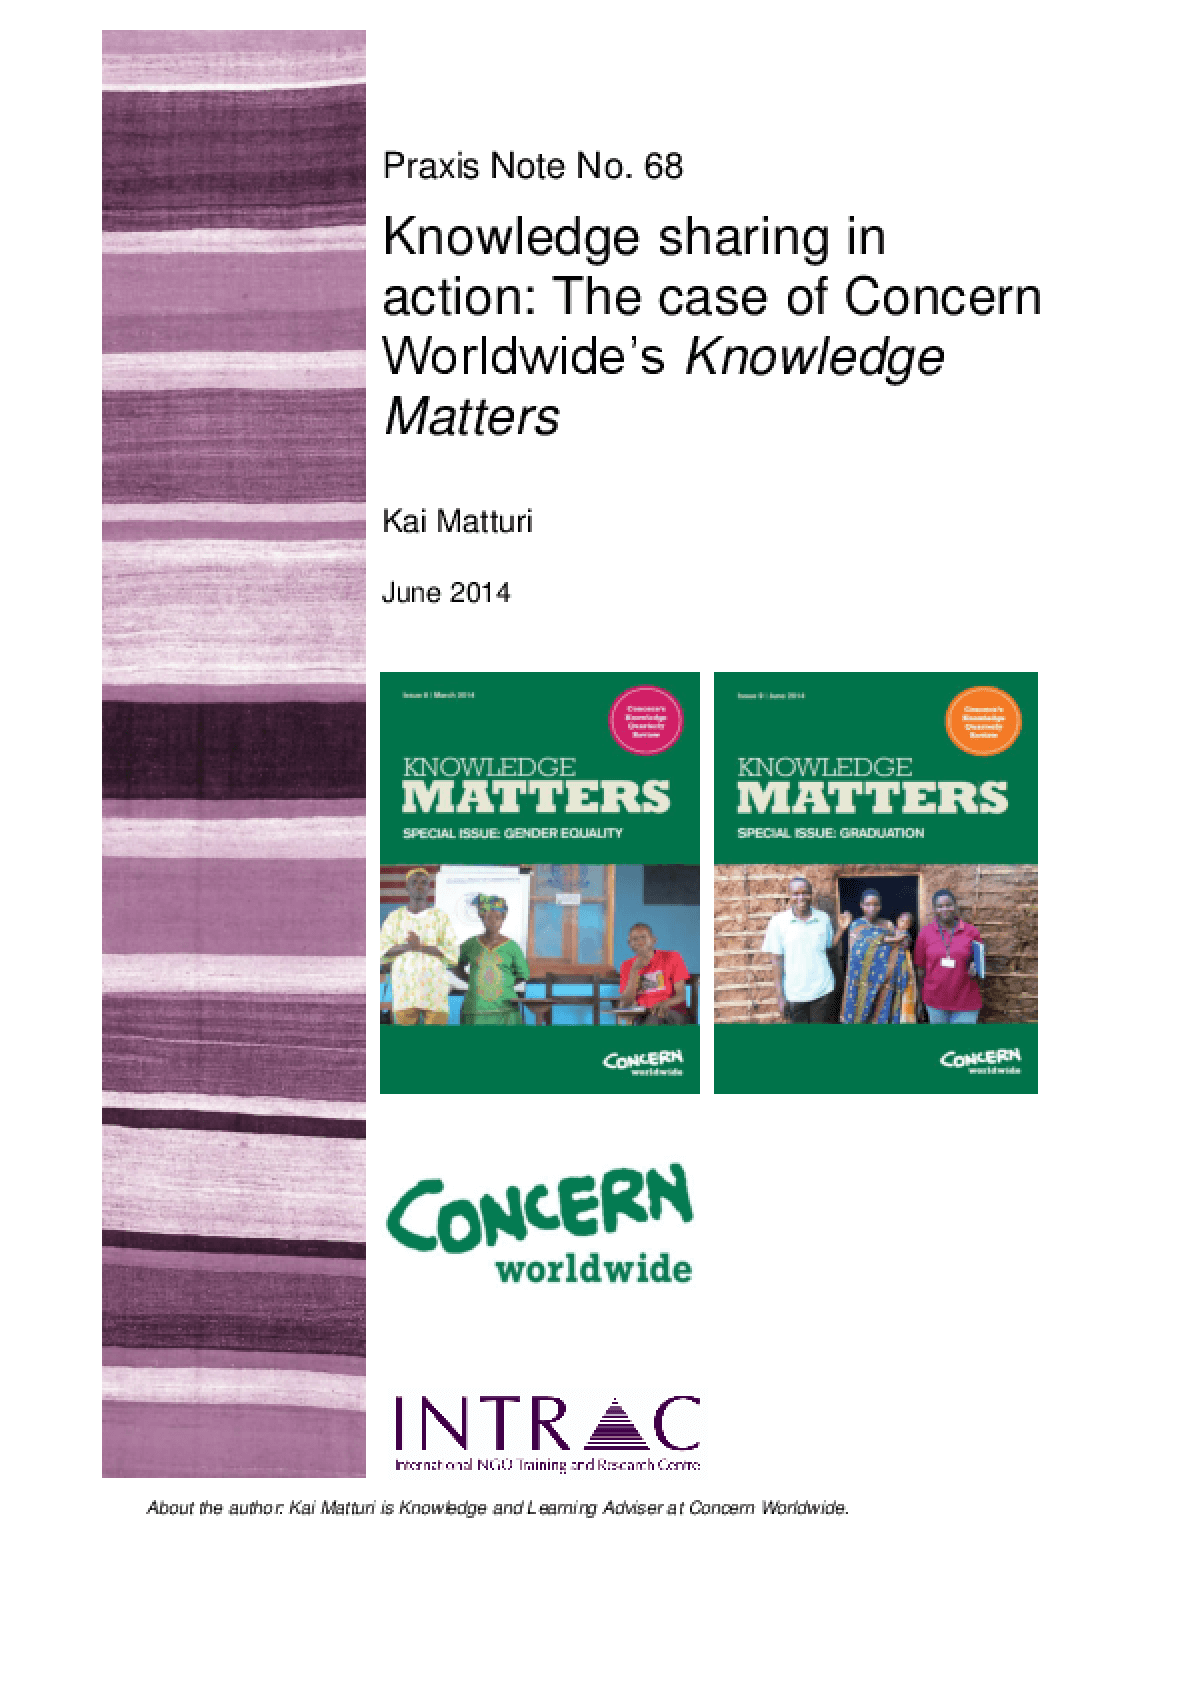 Knowledge Sharing in Action: The Case of Concern Worldwide's Knowledge Matters